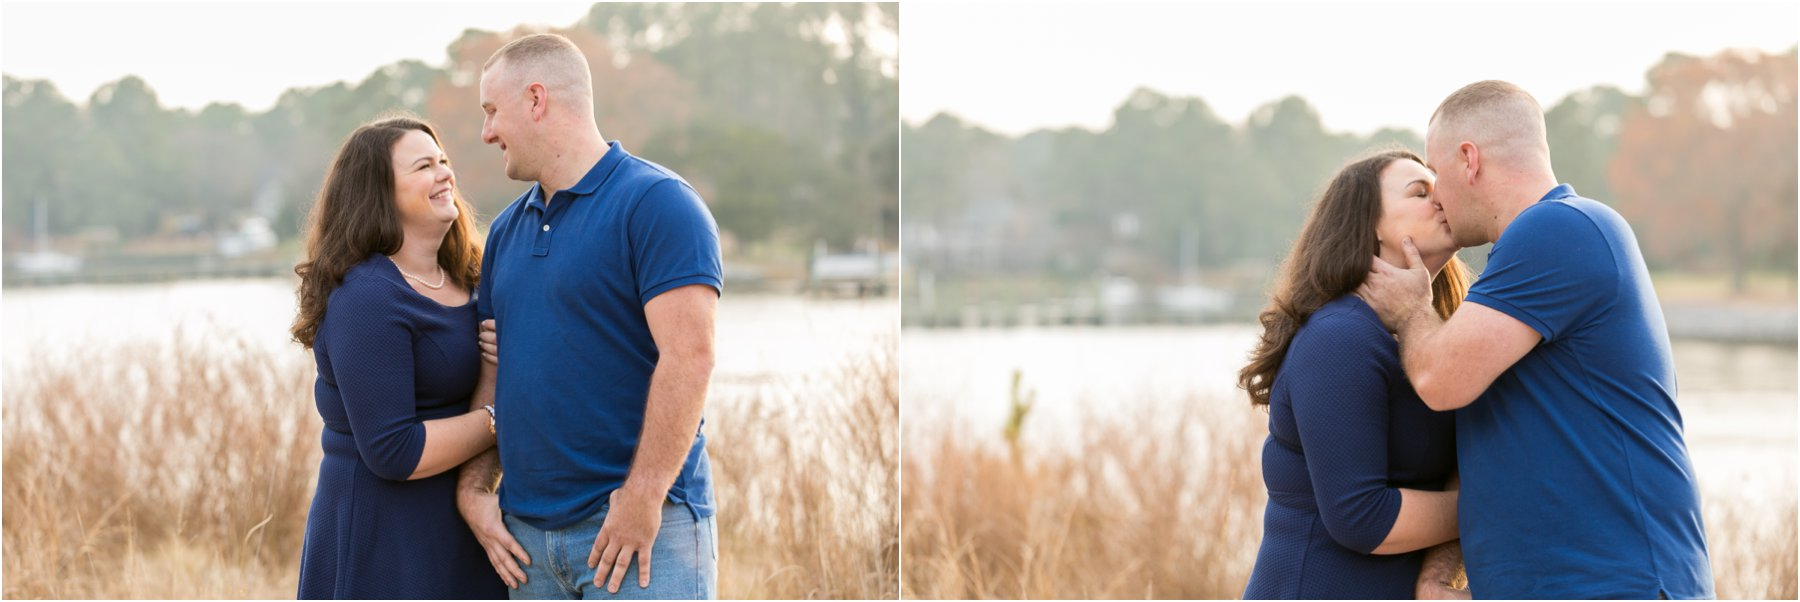 first_landing_state_park_engagement_photography_virginia_beach_Jessica_ryan_photography_0115